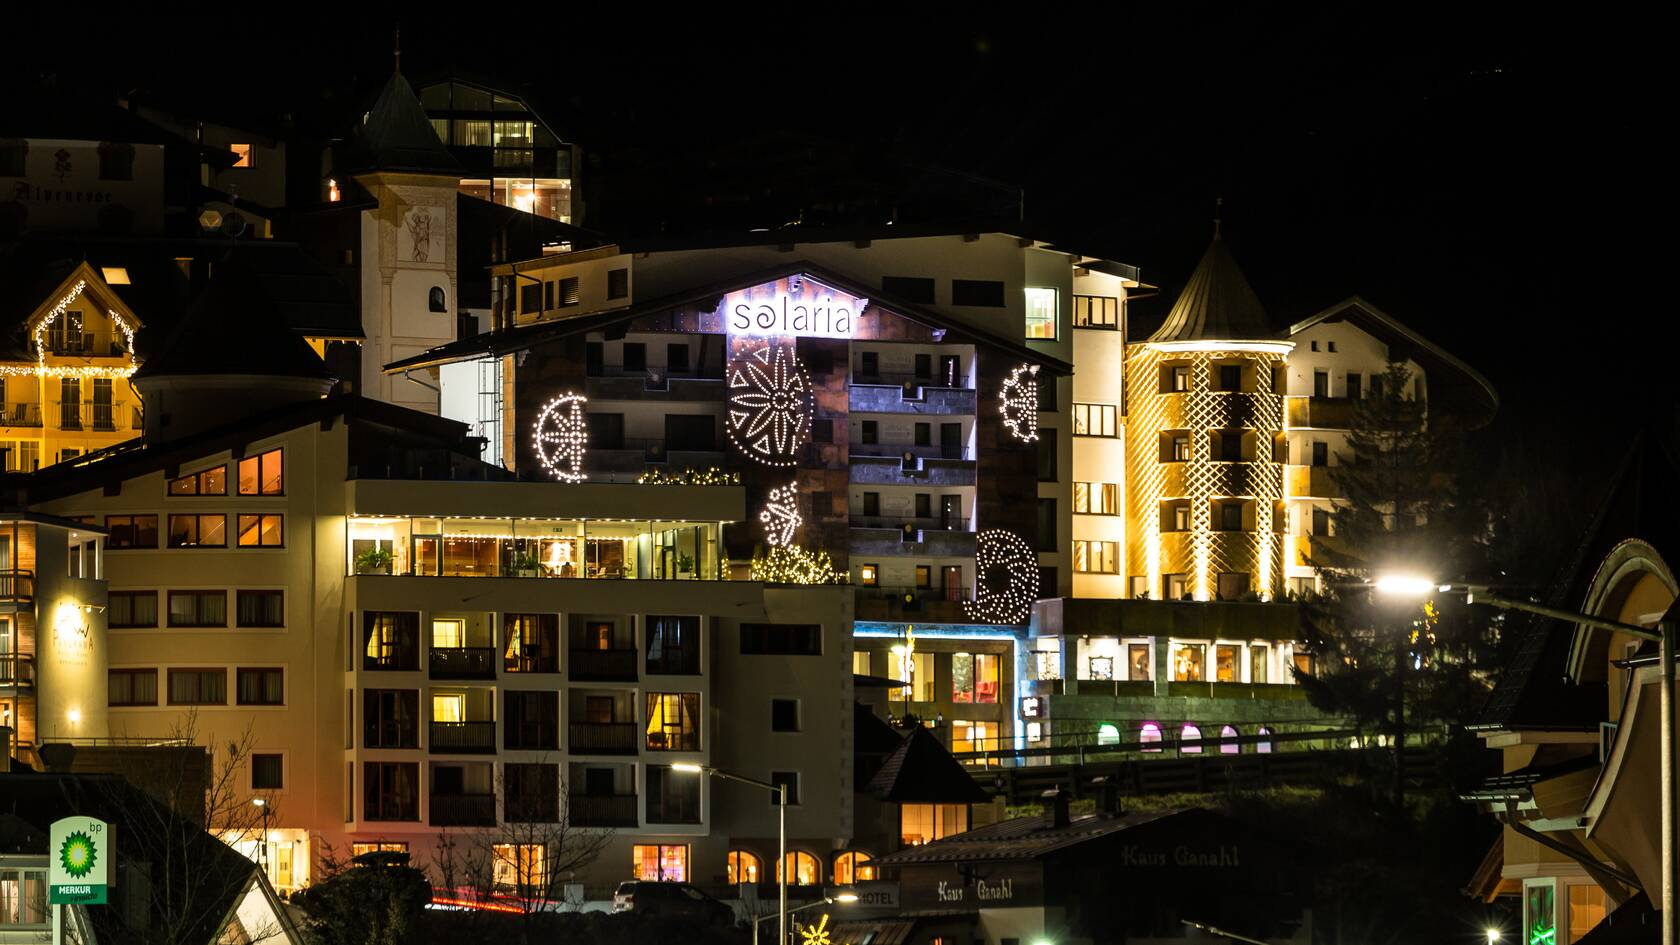 hotel solaria ischgl at night